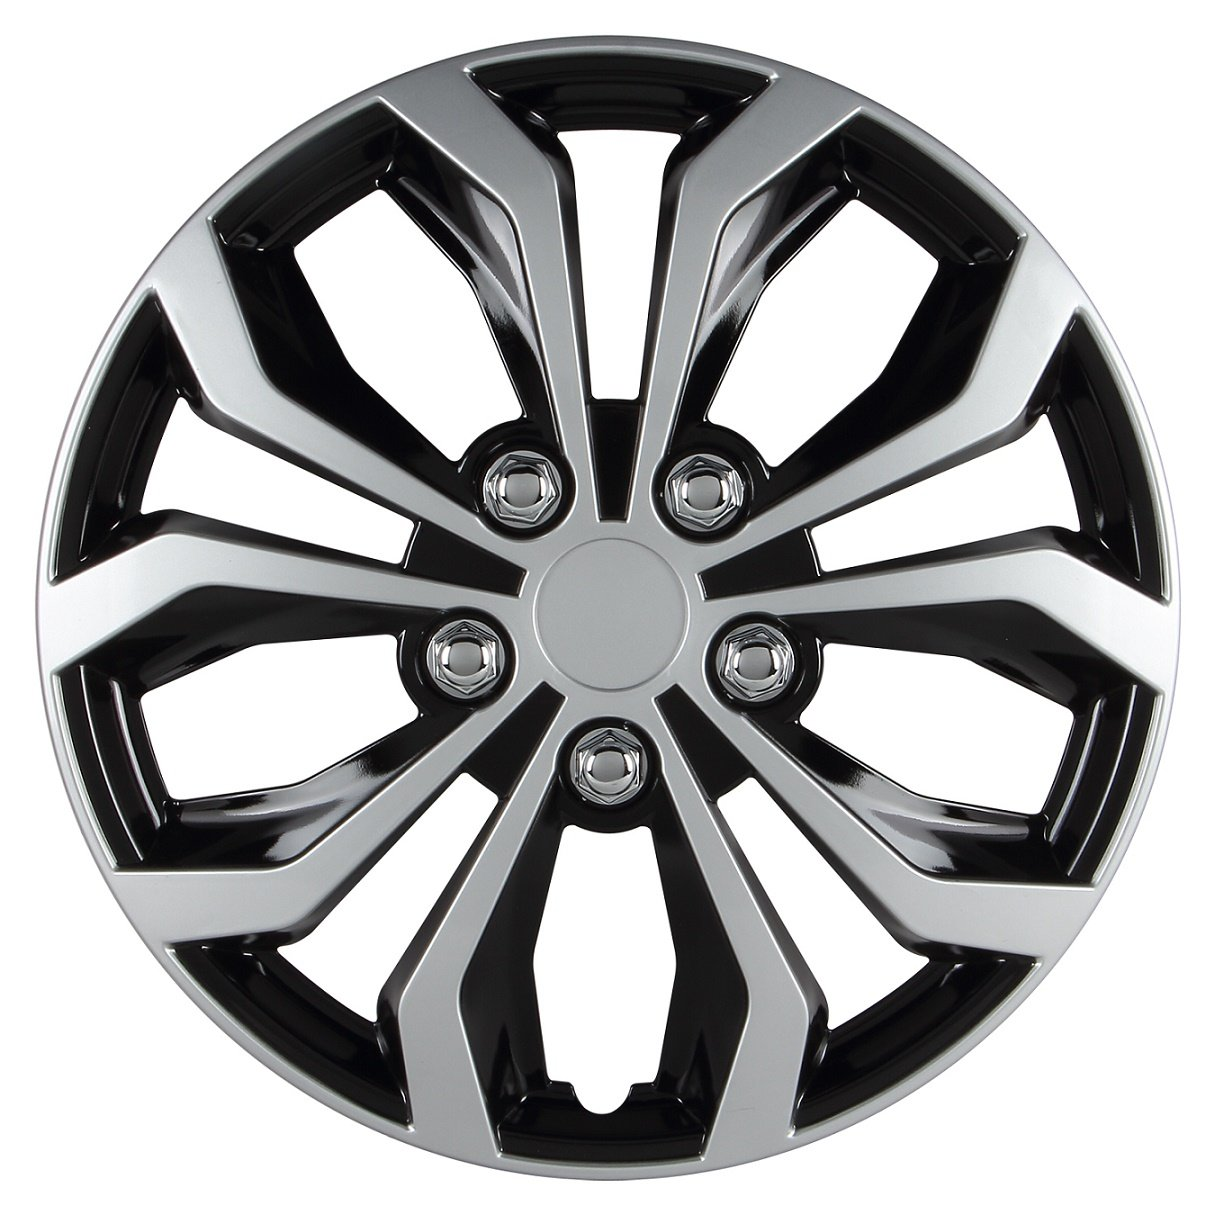 Pilot Automotive WH553-16S-BS Spyder 16' Performance Wheel Cover, Two Tone Black/Silver Finish, (Pack of 4)